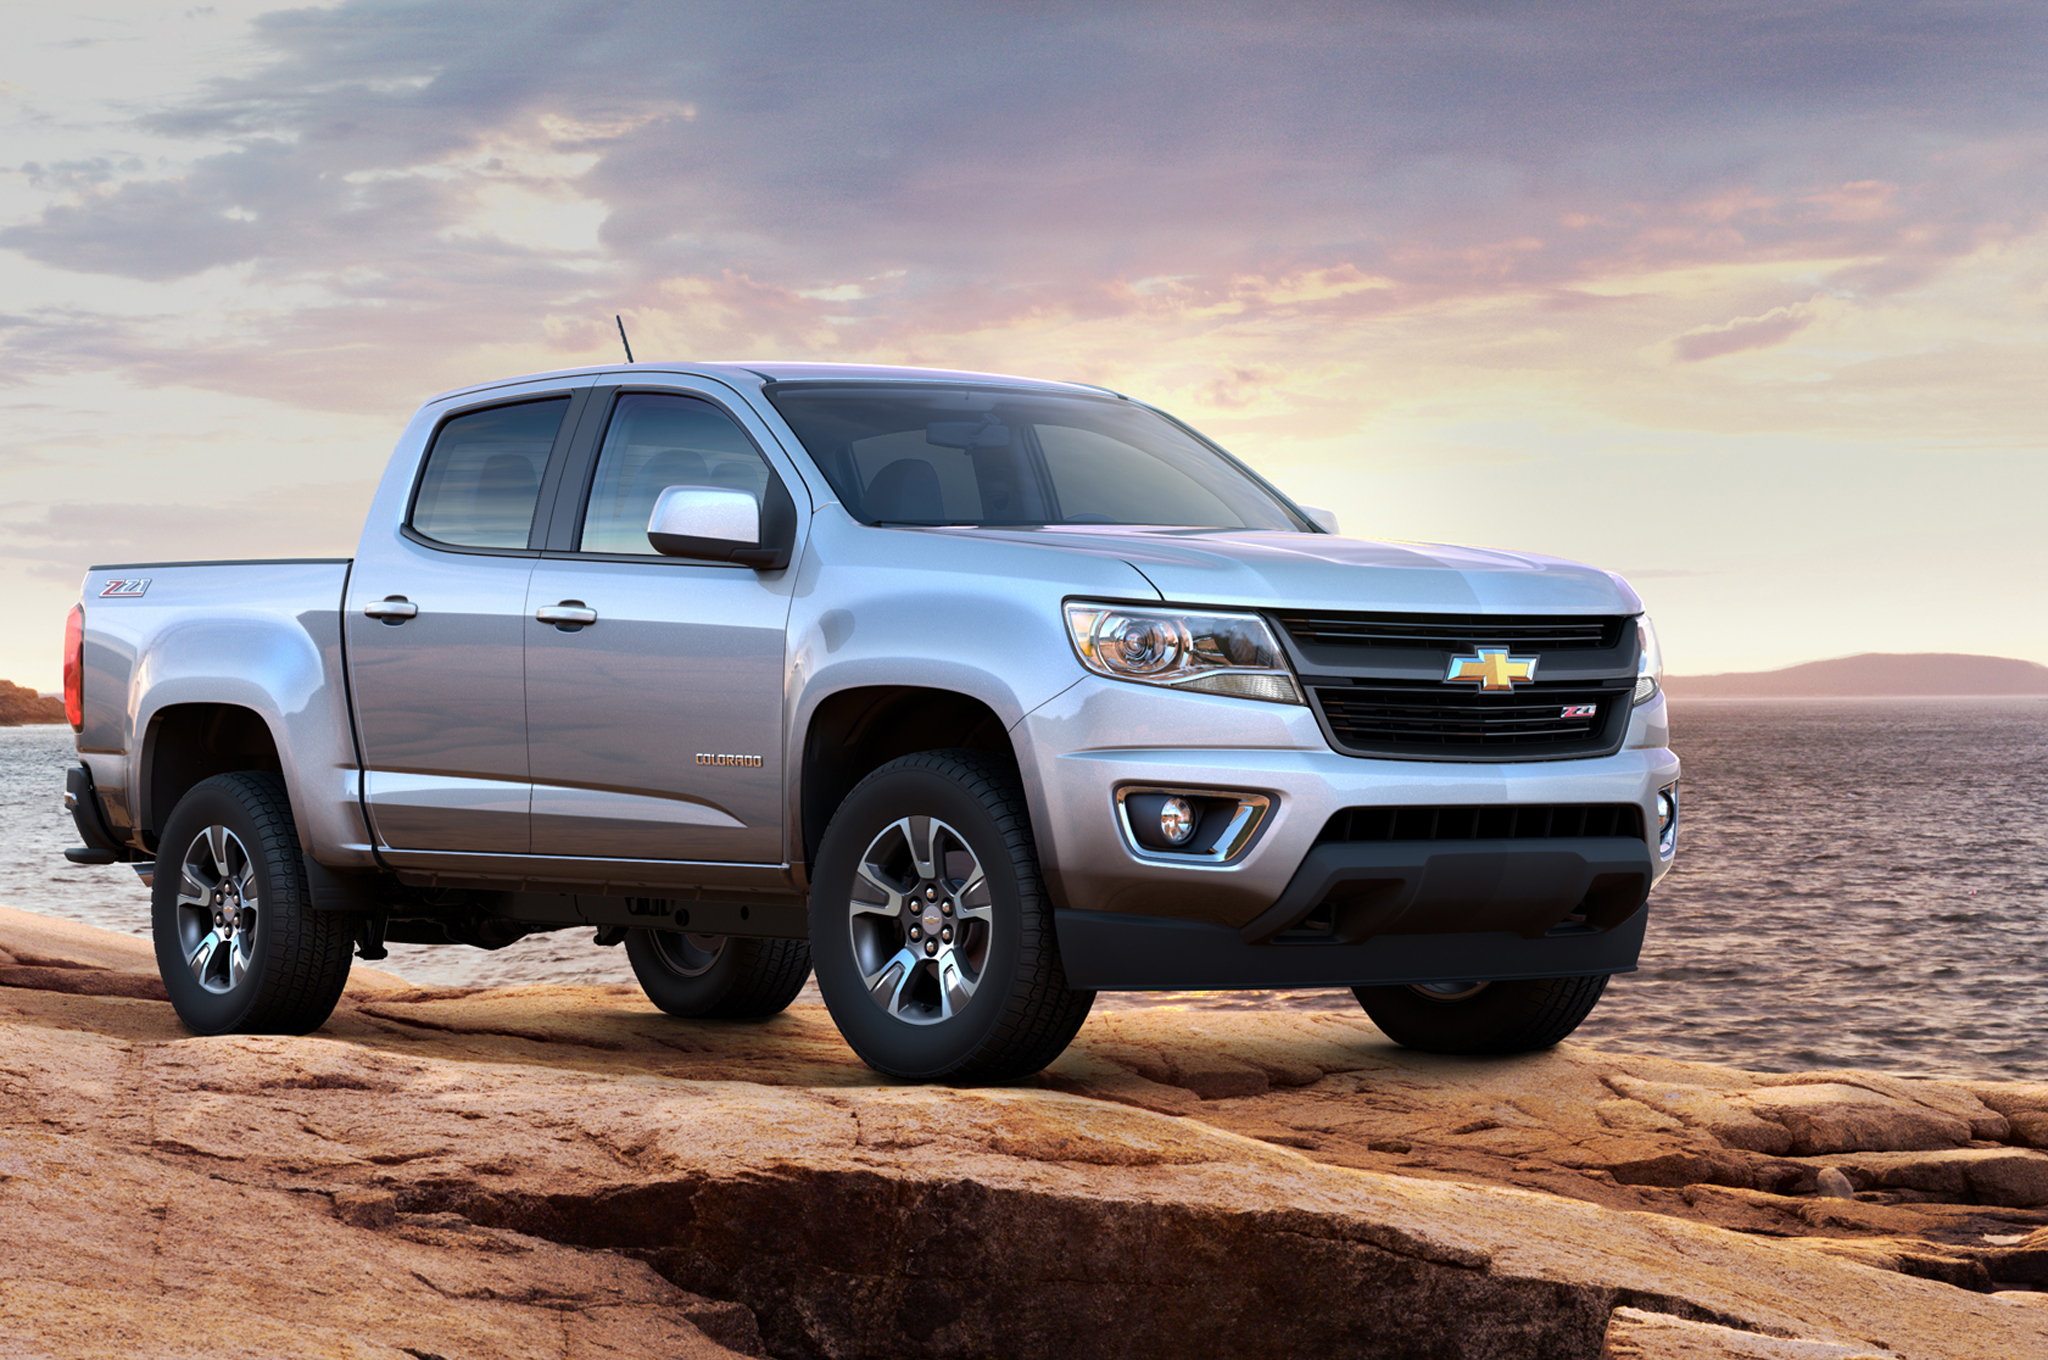 2015 Chevrolet Colorado Starts at $20,995, GMC Canyon at $21,880